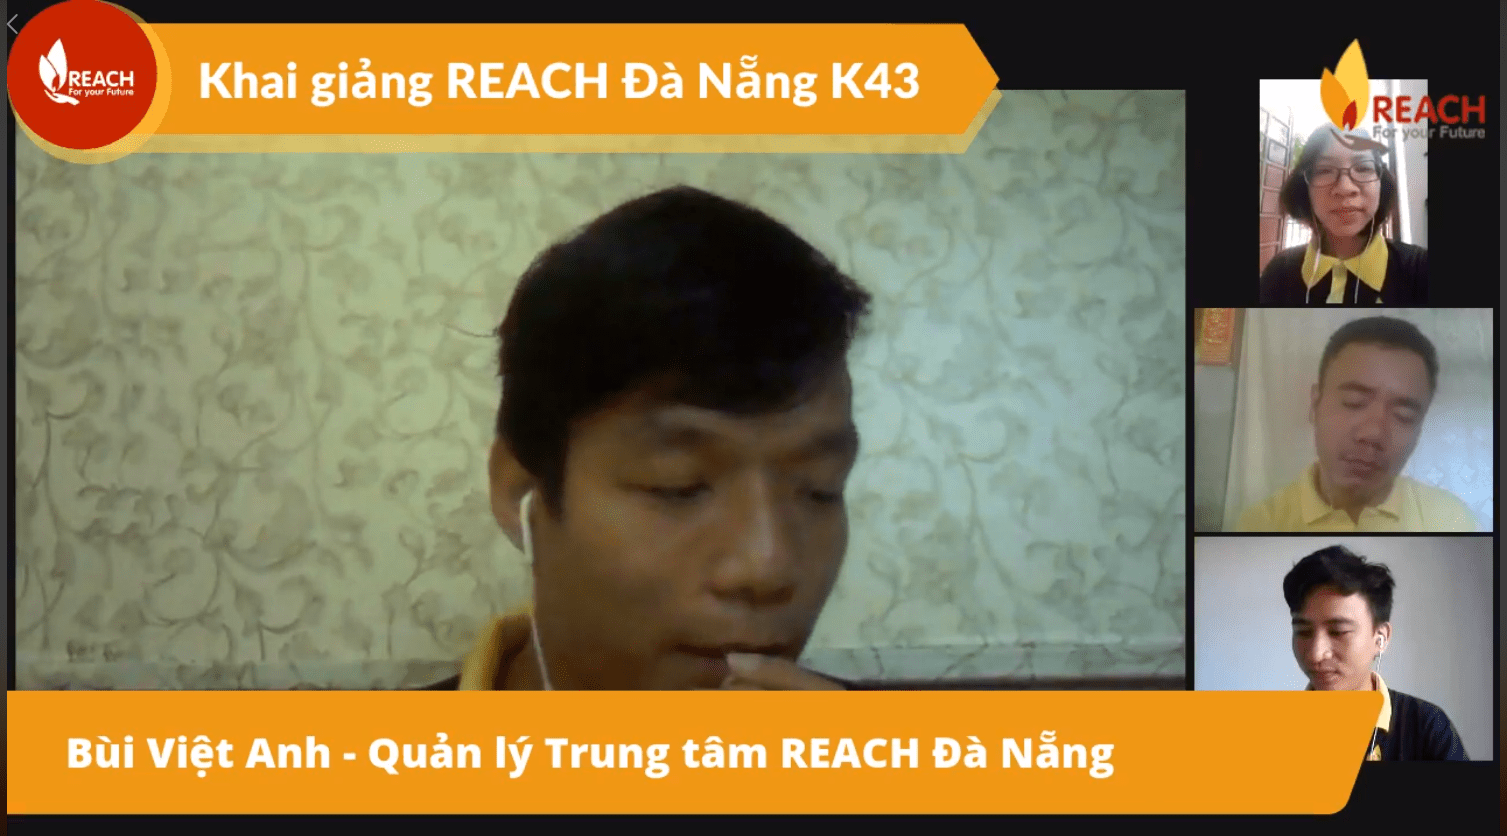 Teachers at REACH Danang welcome new students on livestream